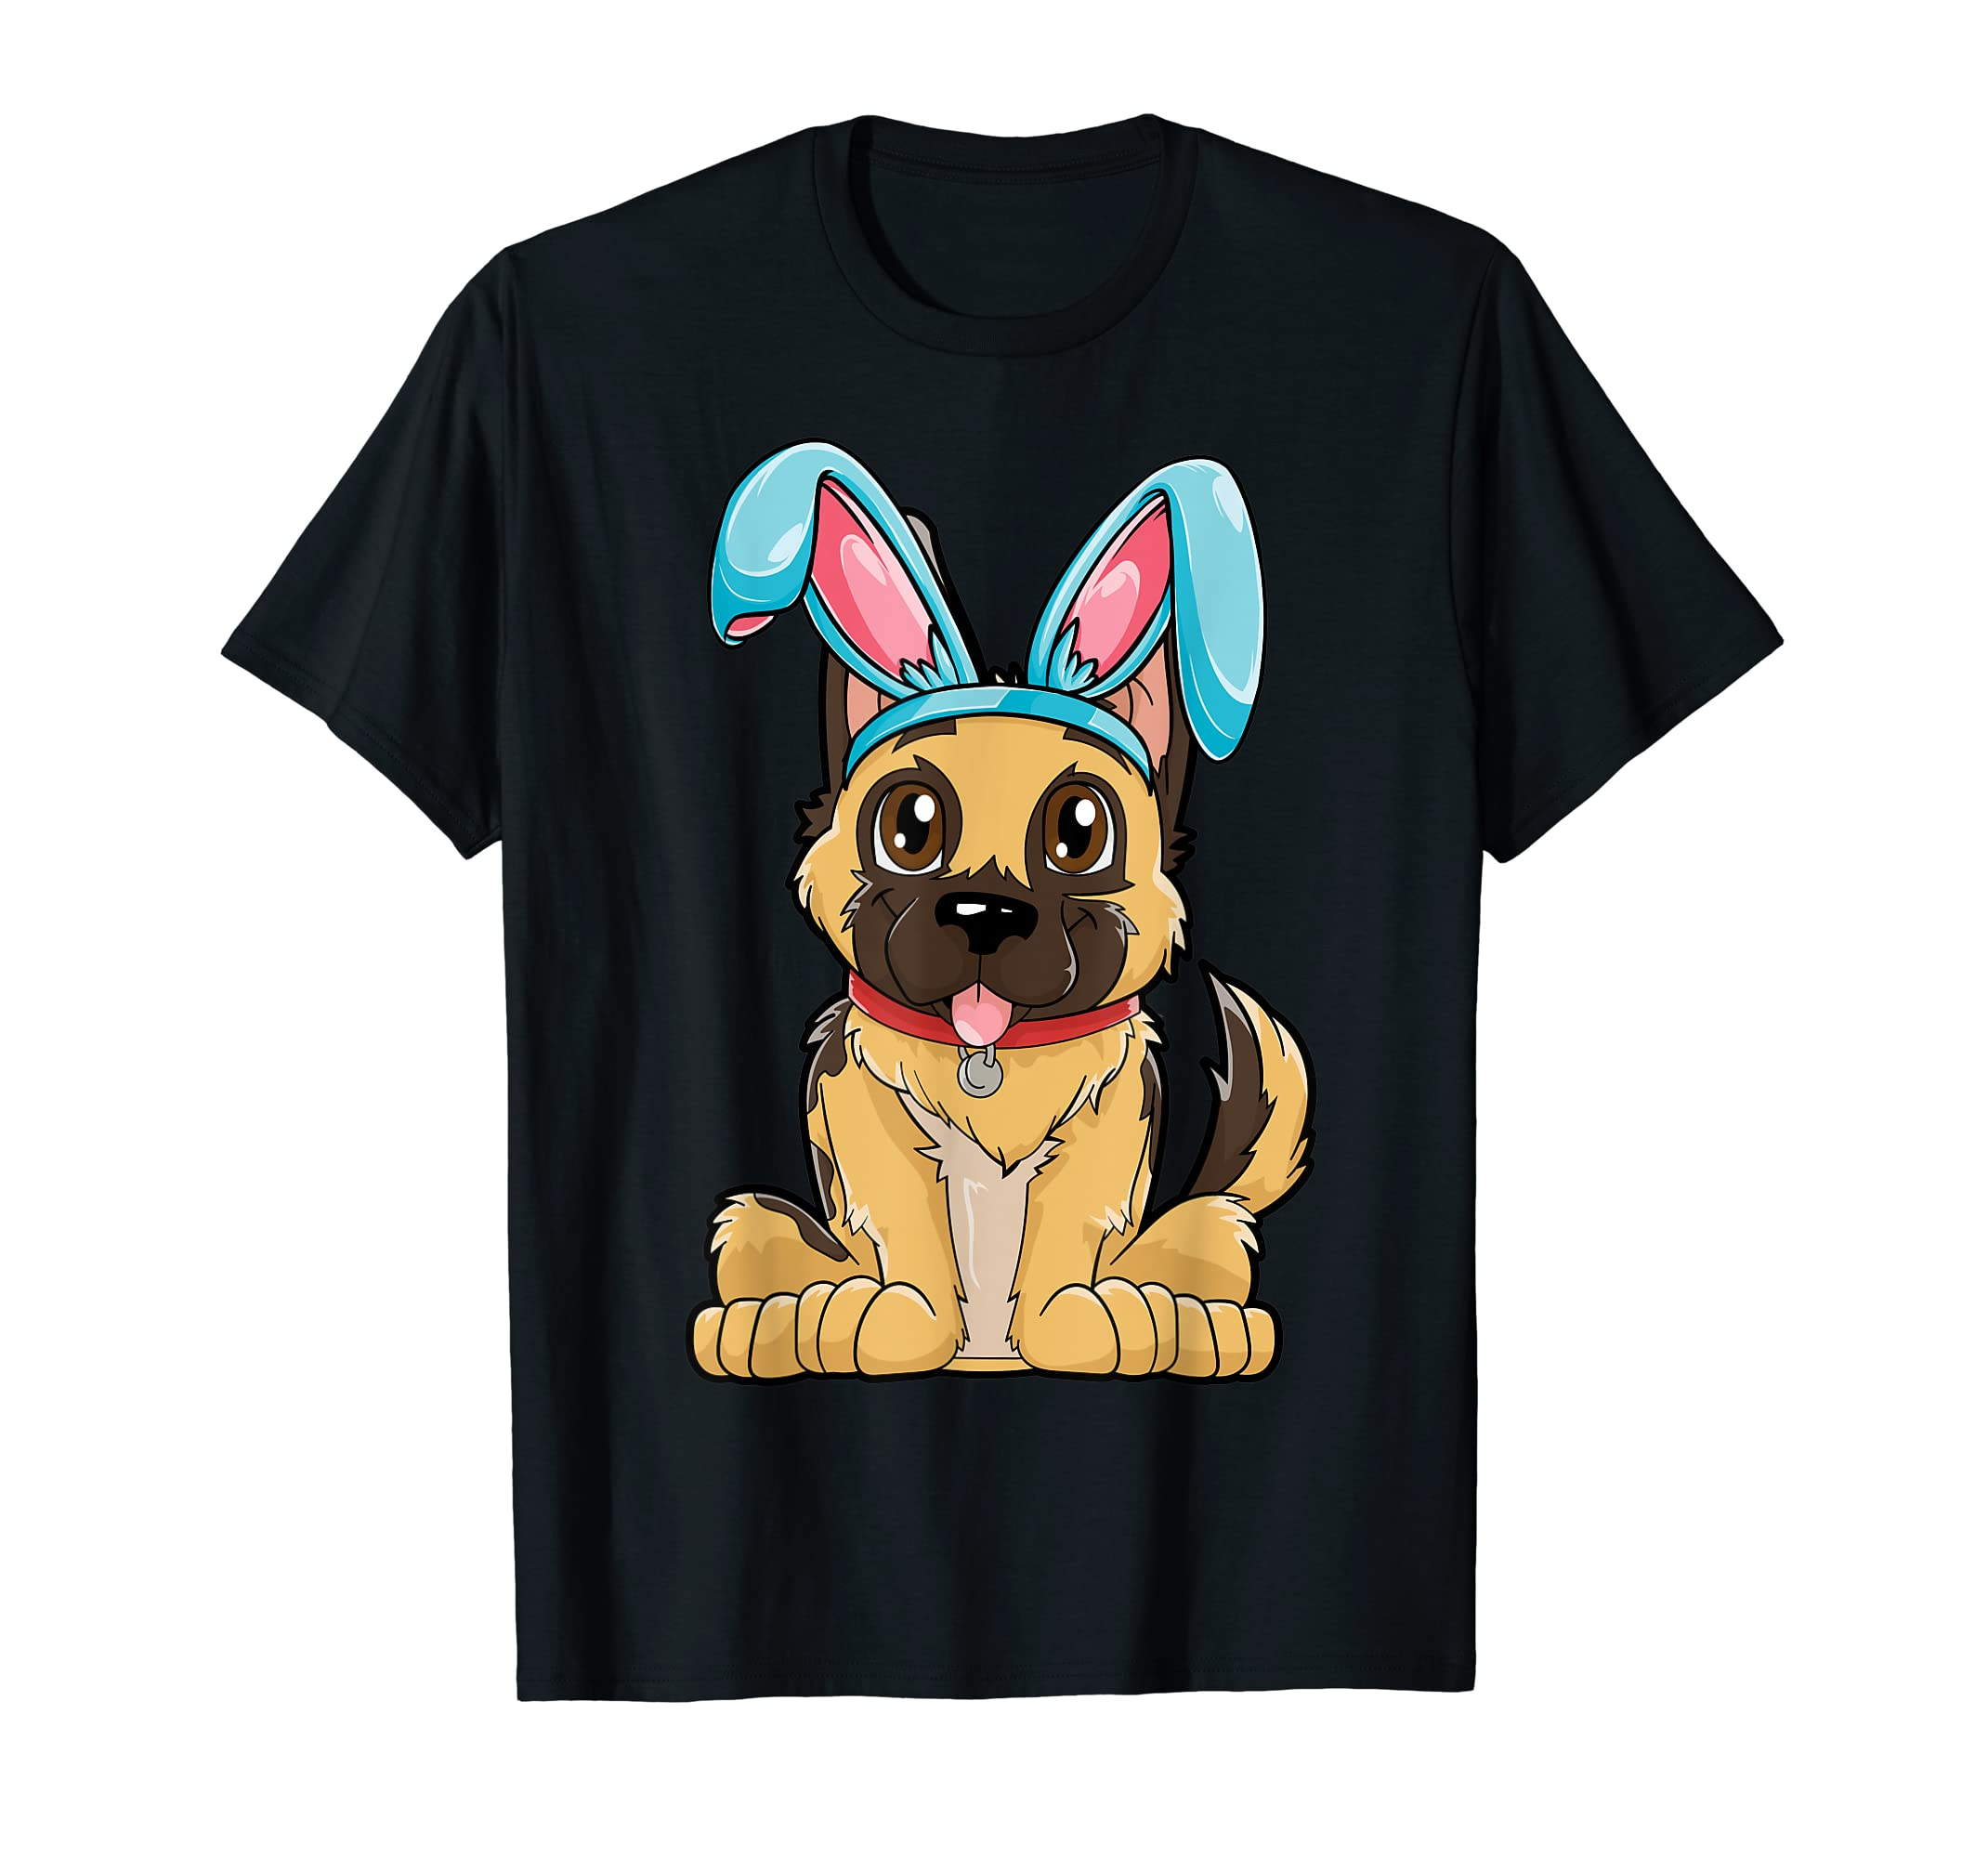 Easter Bunny German Shepherd T shirt Dog Boys Girl Kids Men-Men's T-Shirt-Black